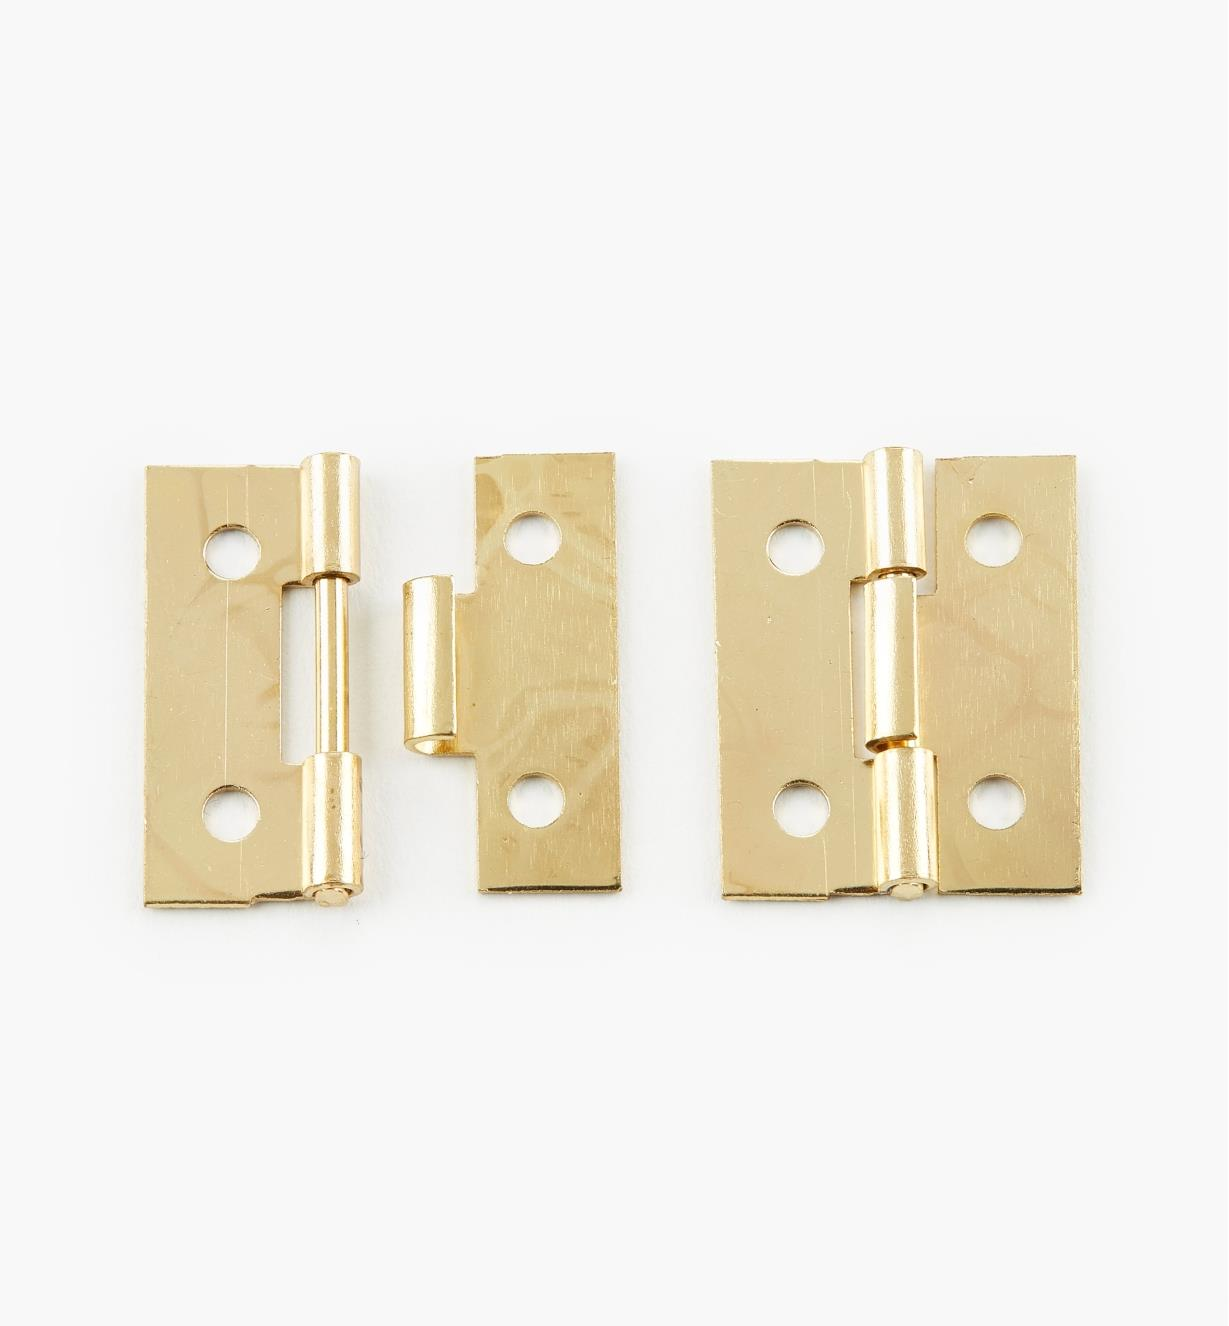 00D4380 - 25mm × 20mm Detachable Hinges, pr.